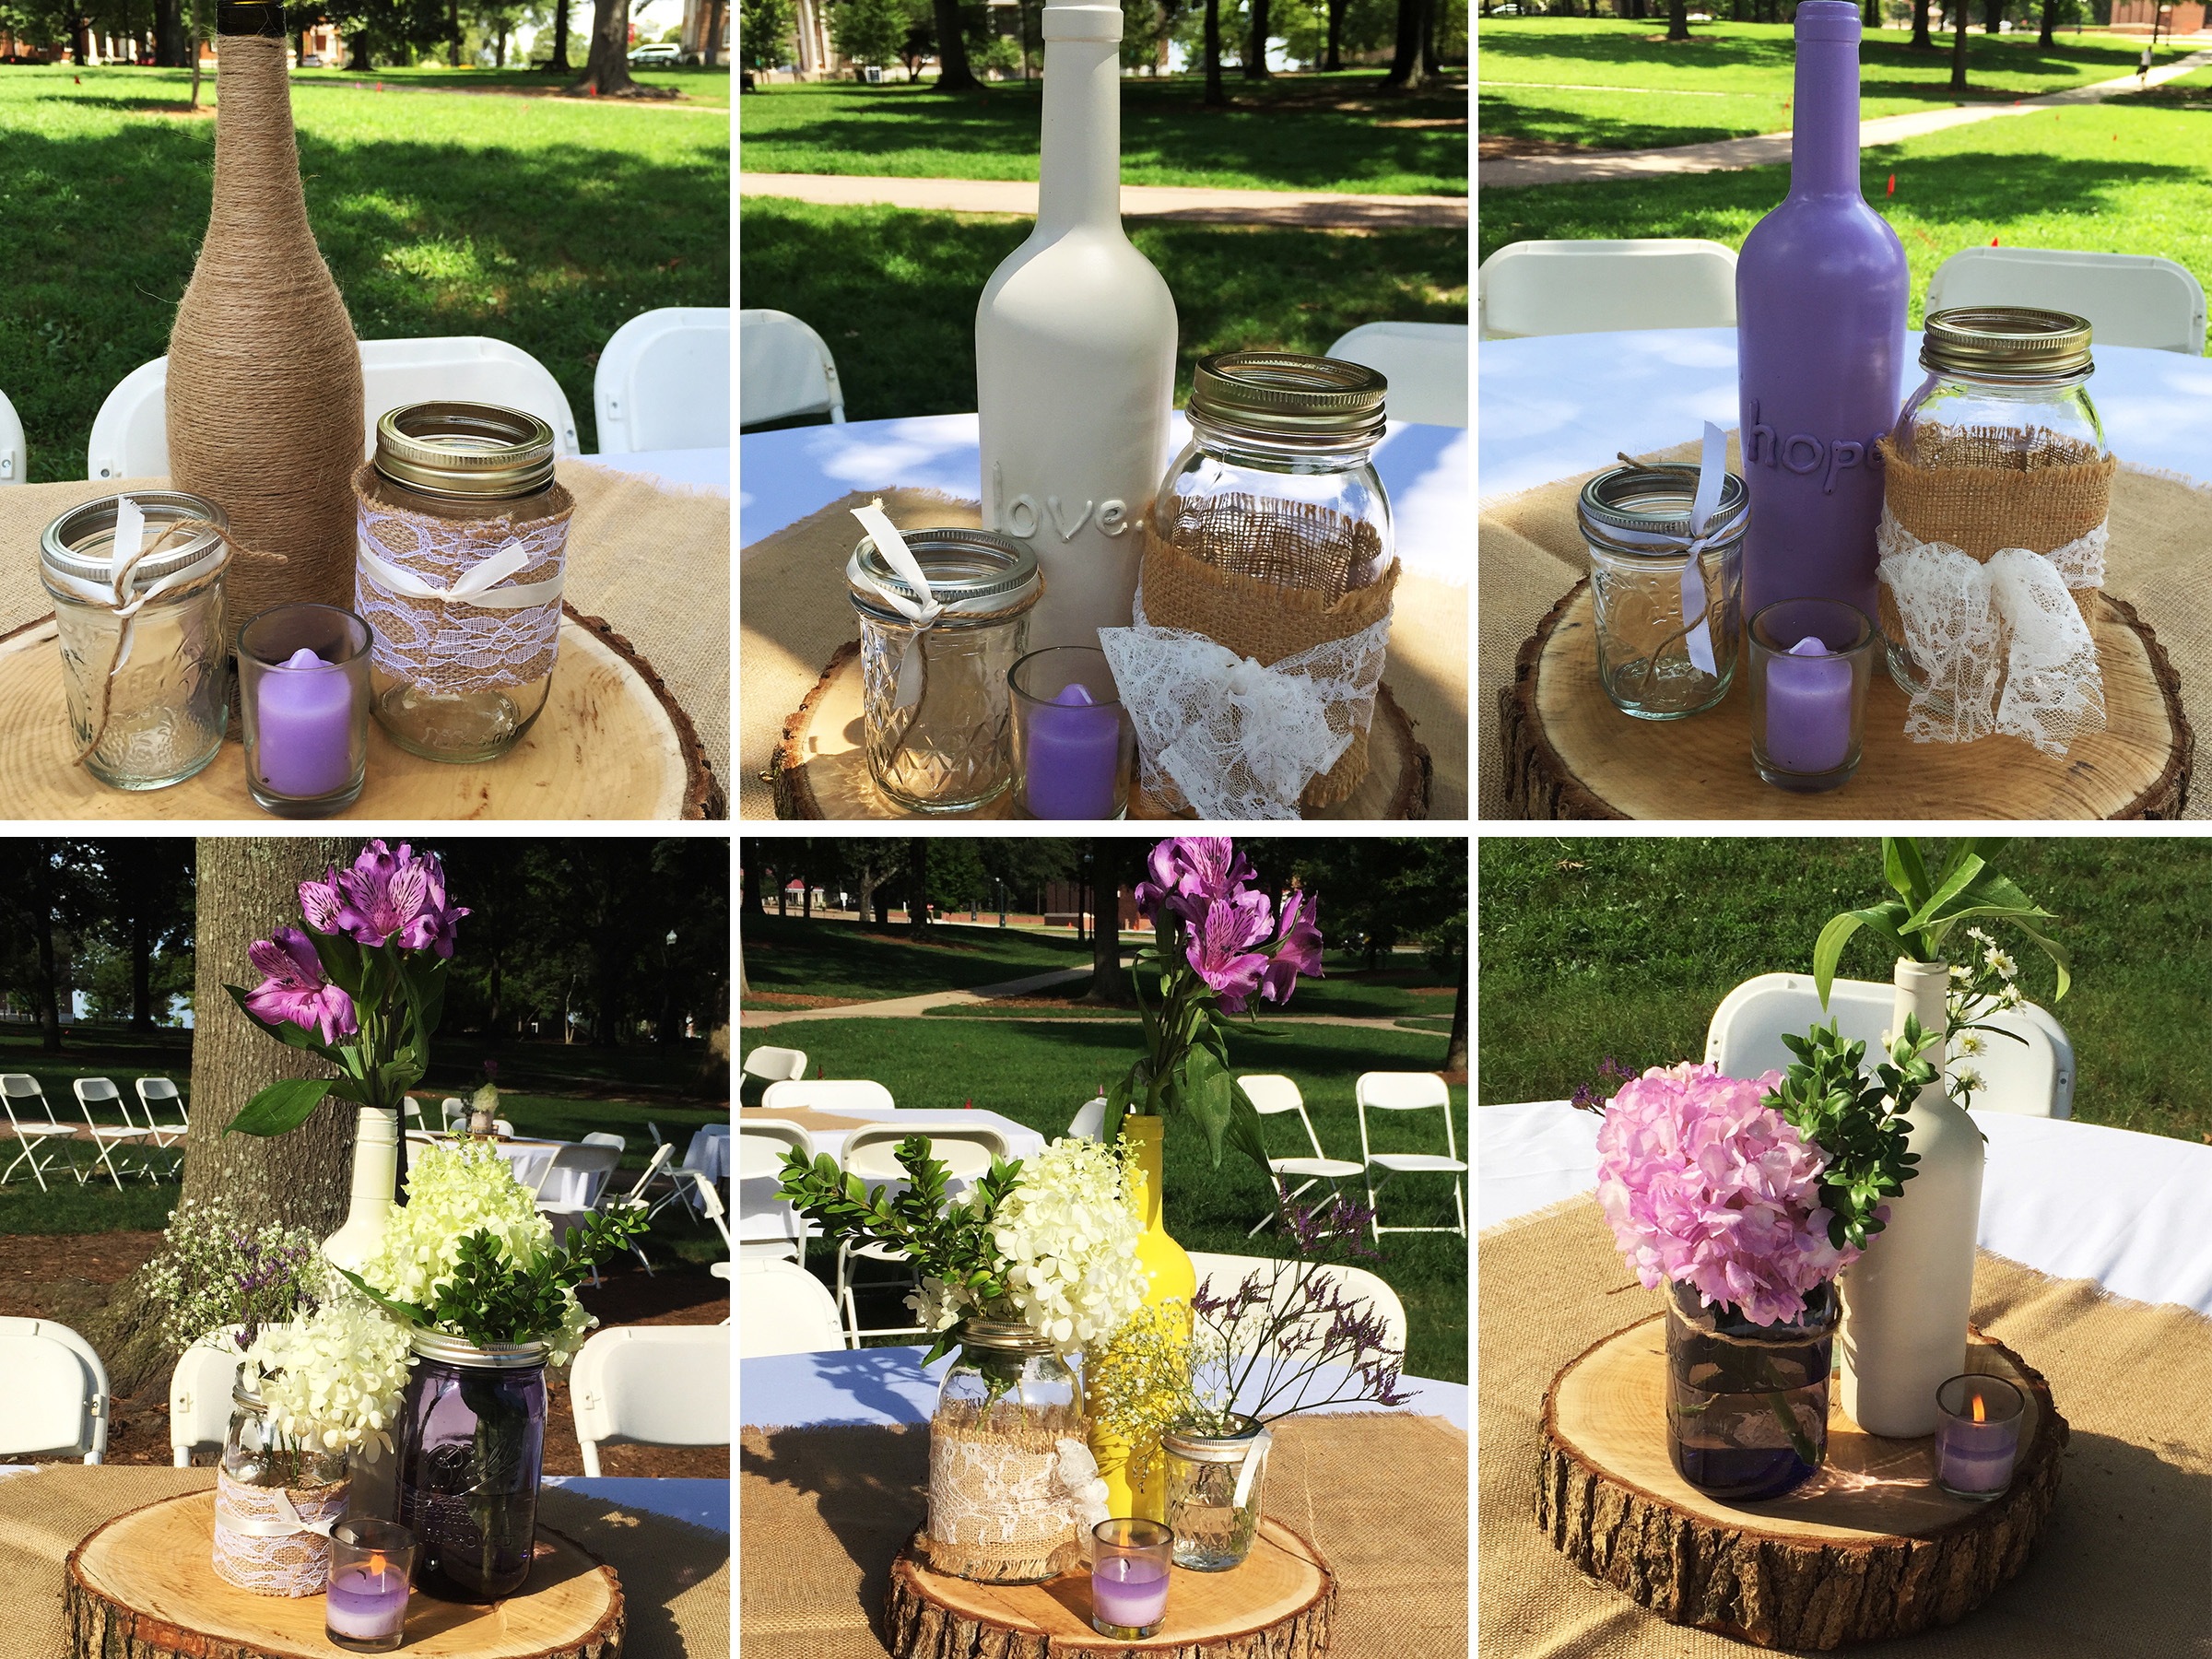 Do it yourself wedding decorations from pinterest that pinterest diy solutioingenieria Image collections